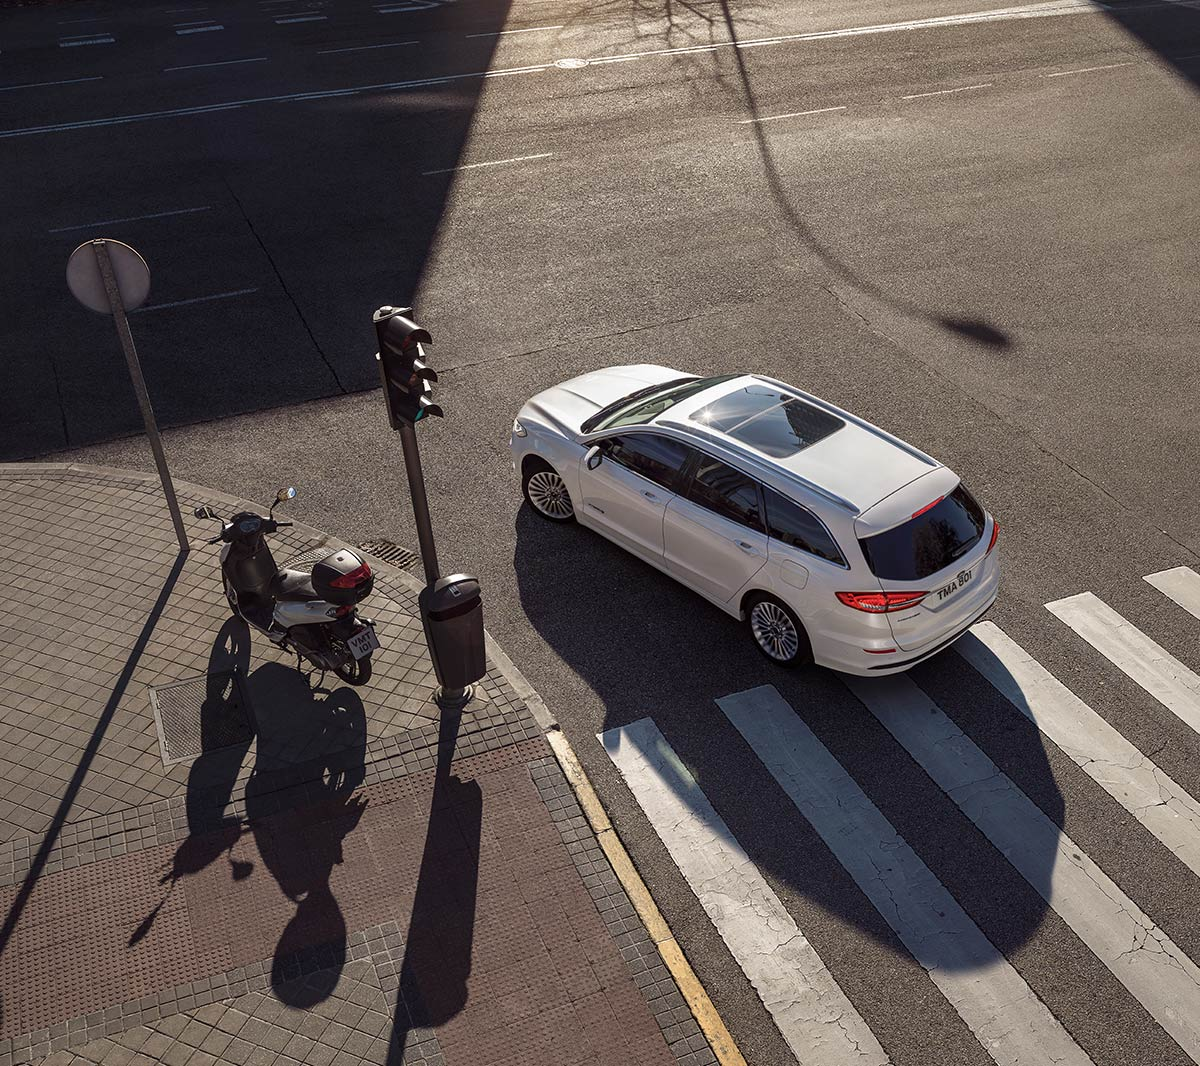 White Ford Mondeo on the crossroad from bird's view